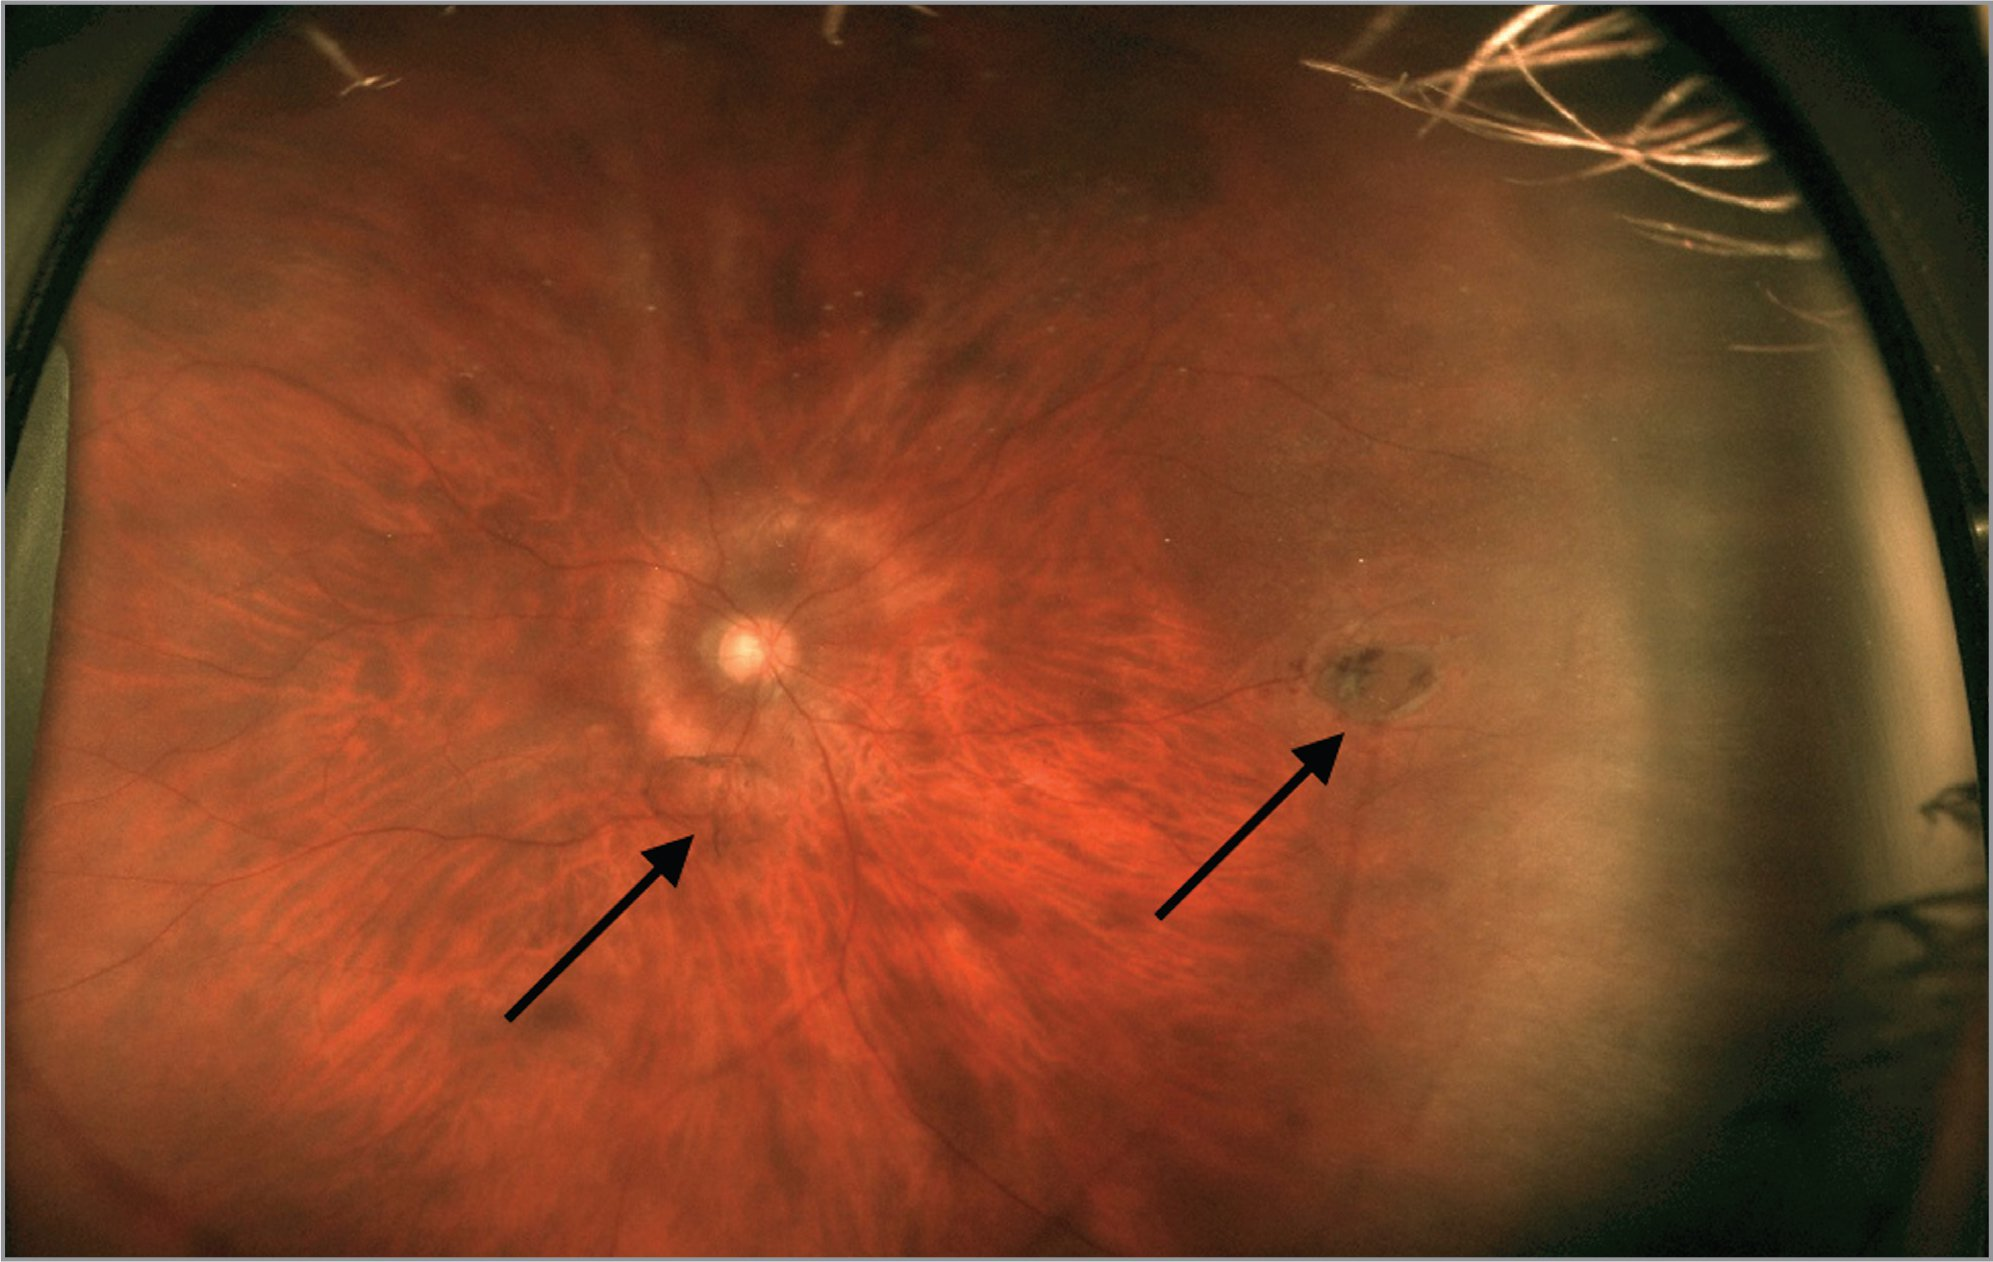 Optos fundus photo of the right eye demonstrating a Weiss ring (left arrow) and a large horseshoe tear at the 3-o'clock position (right arrow).